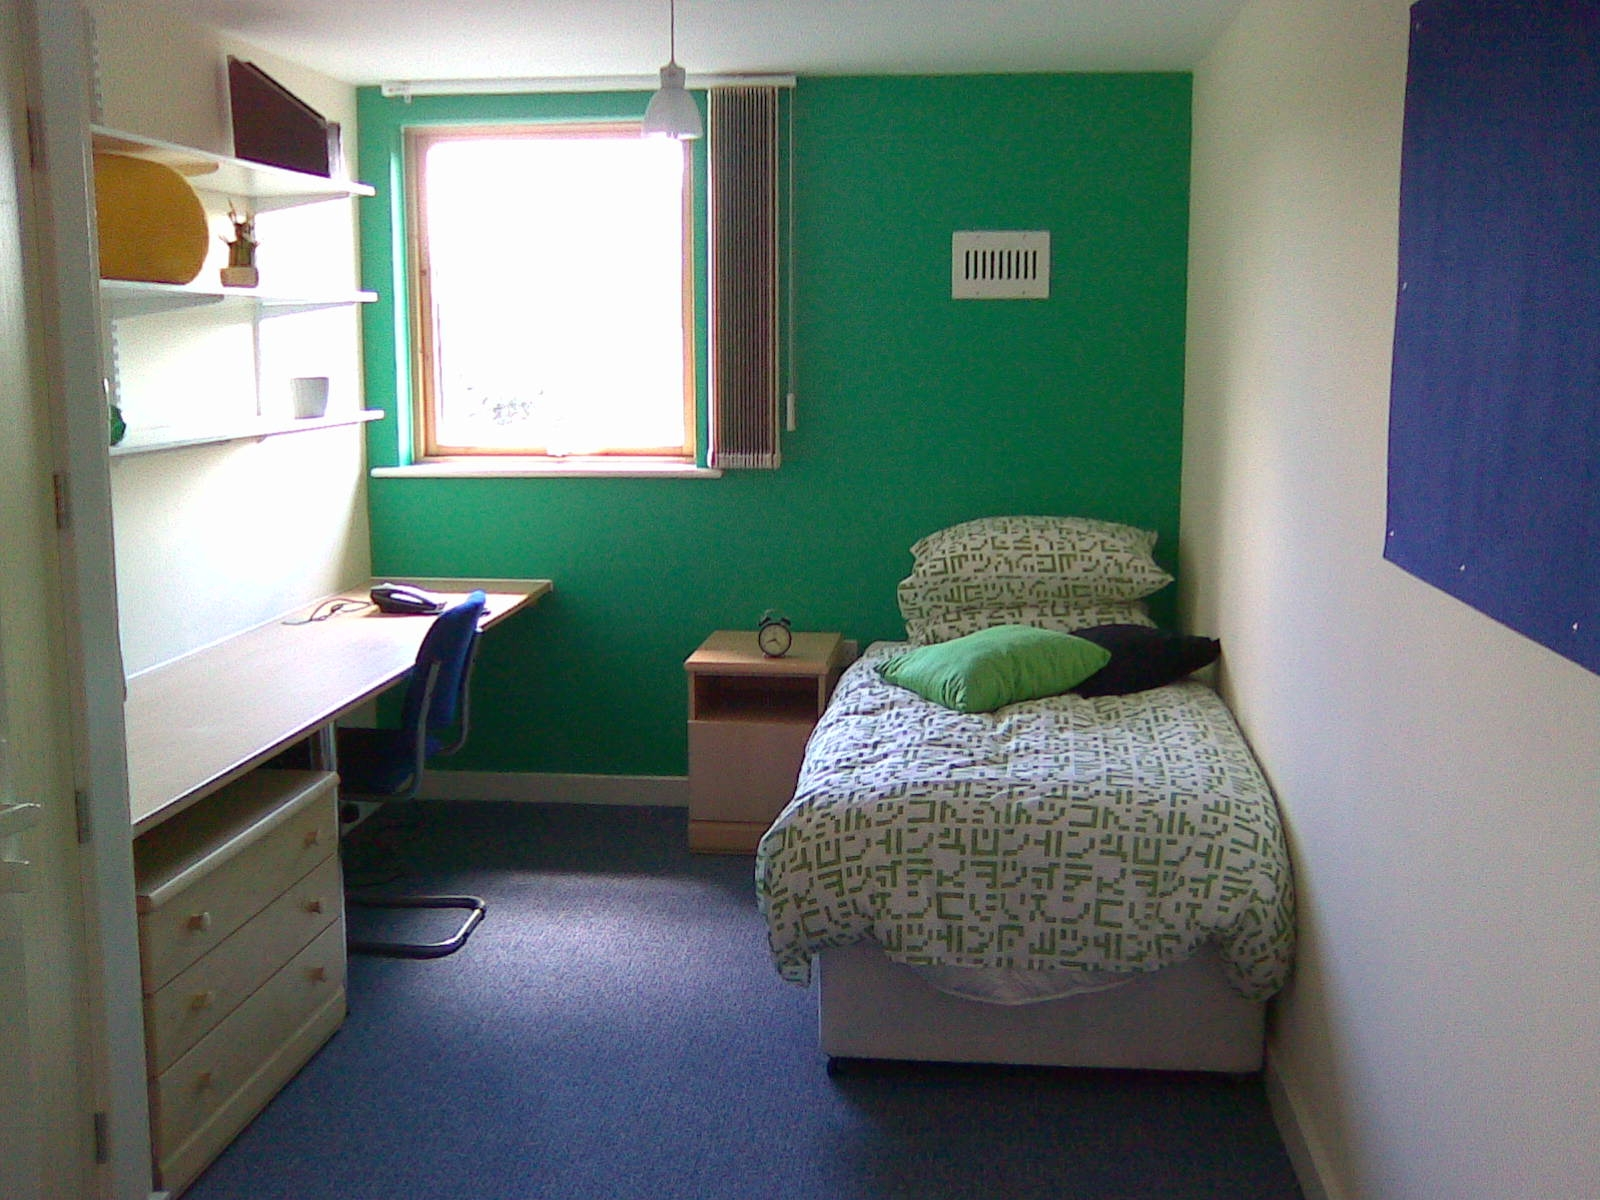 A study bedroom showing a bed, bedside cabinet, desk and chair